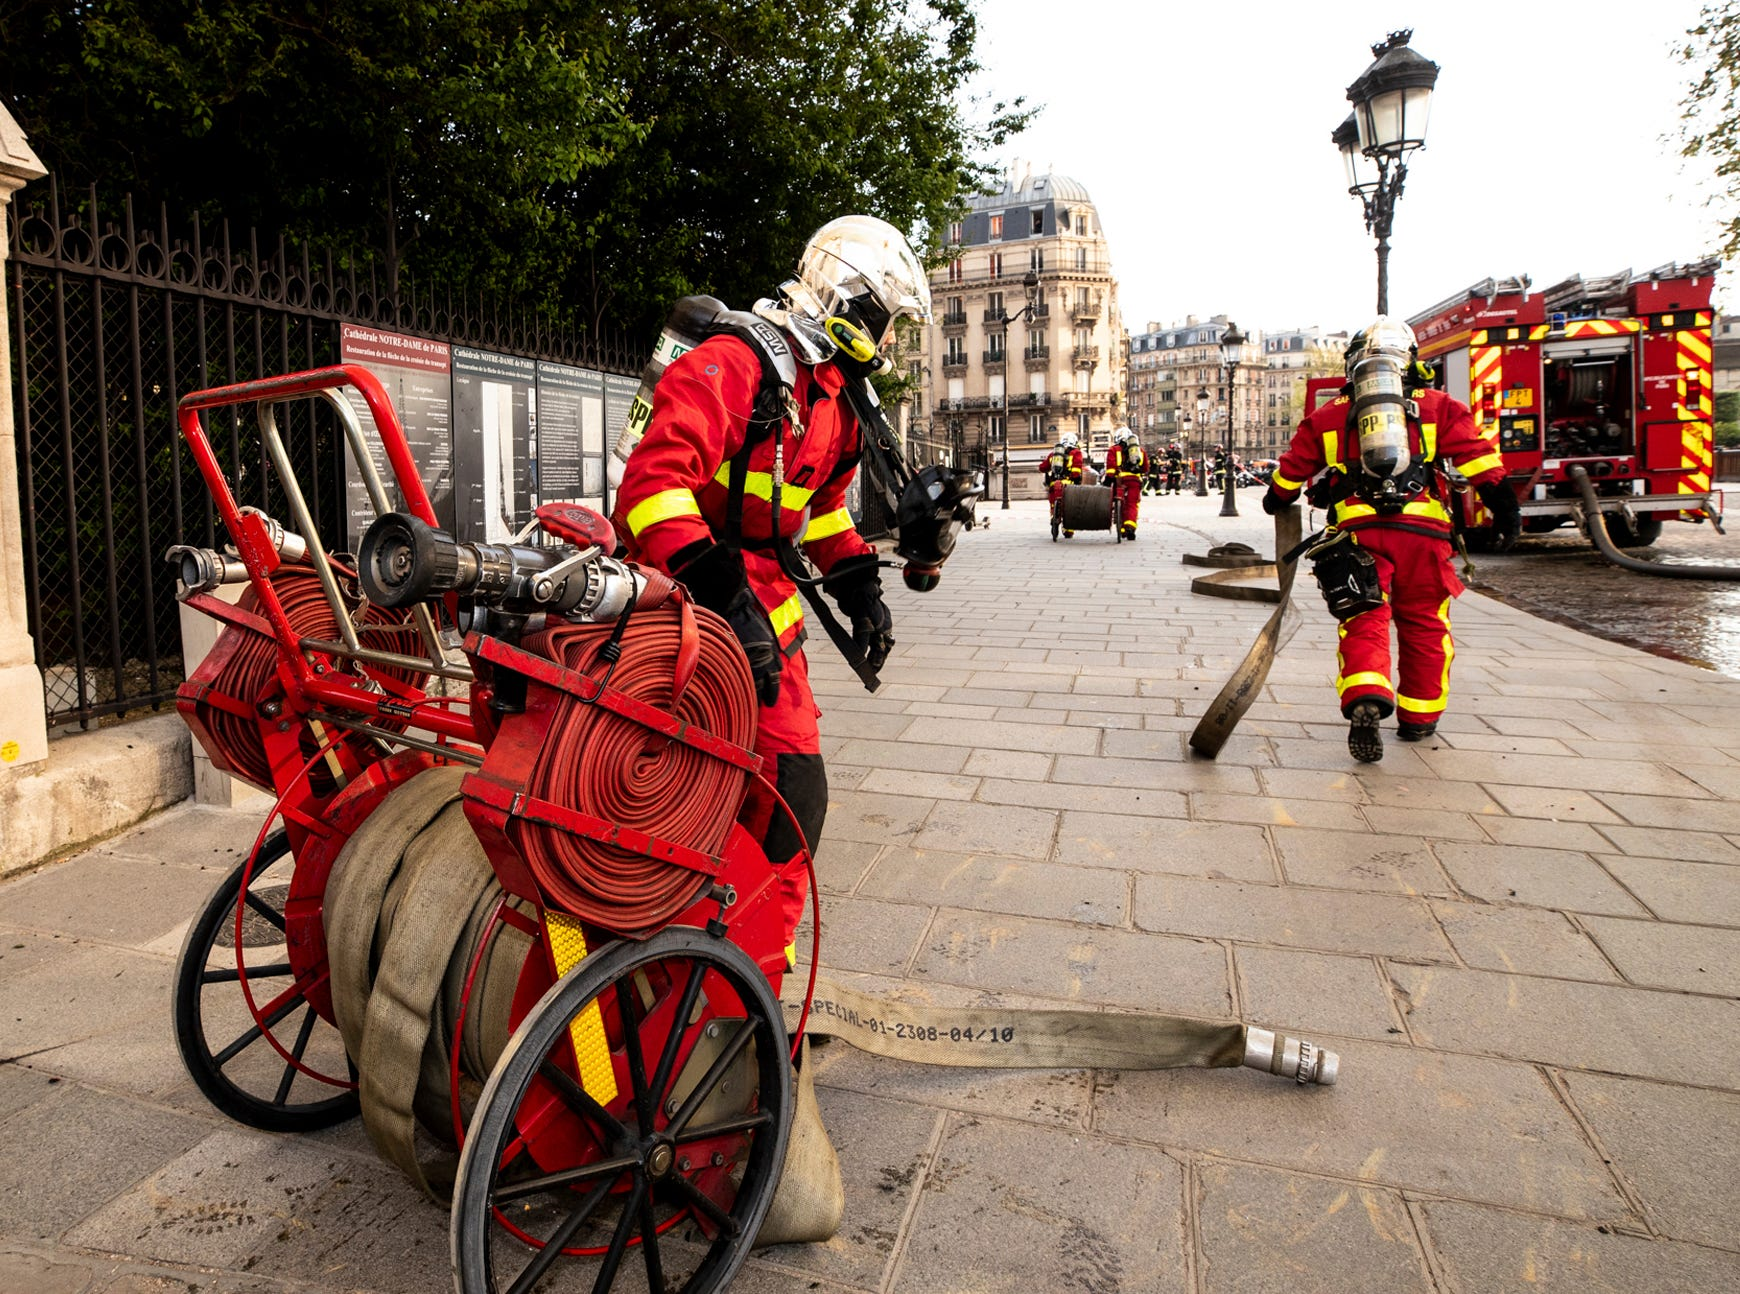 This photo provided Tuesday April 16, 2019 by the Paris Fire Brigade shows fire fighters working at the burning Notre Dame cathedral, Monday April 15, 2019. Experts assessed the blackened shell of Paris' iconic Notre Dame Tuesday morning to establish next steps to save what remains after a devastating fire destroyed much of the cathedral that had survived almost 900 years of history. (Benoit Moser, BSPP via AP)